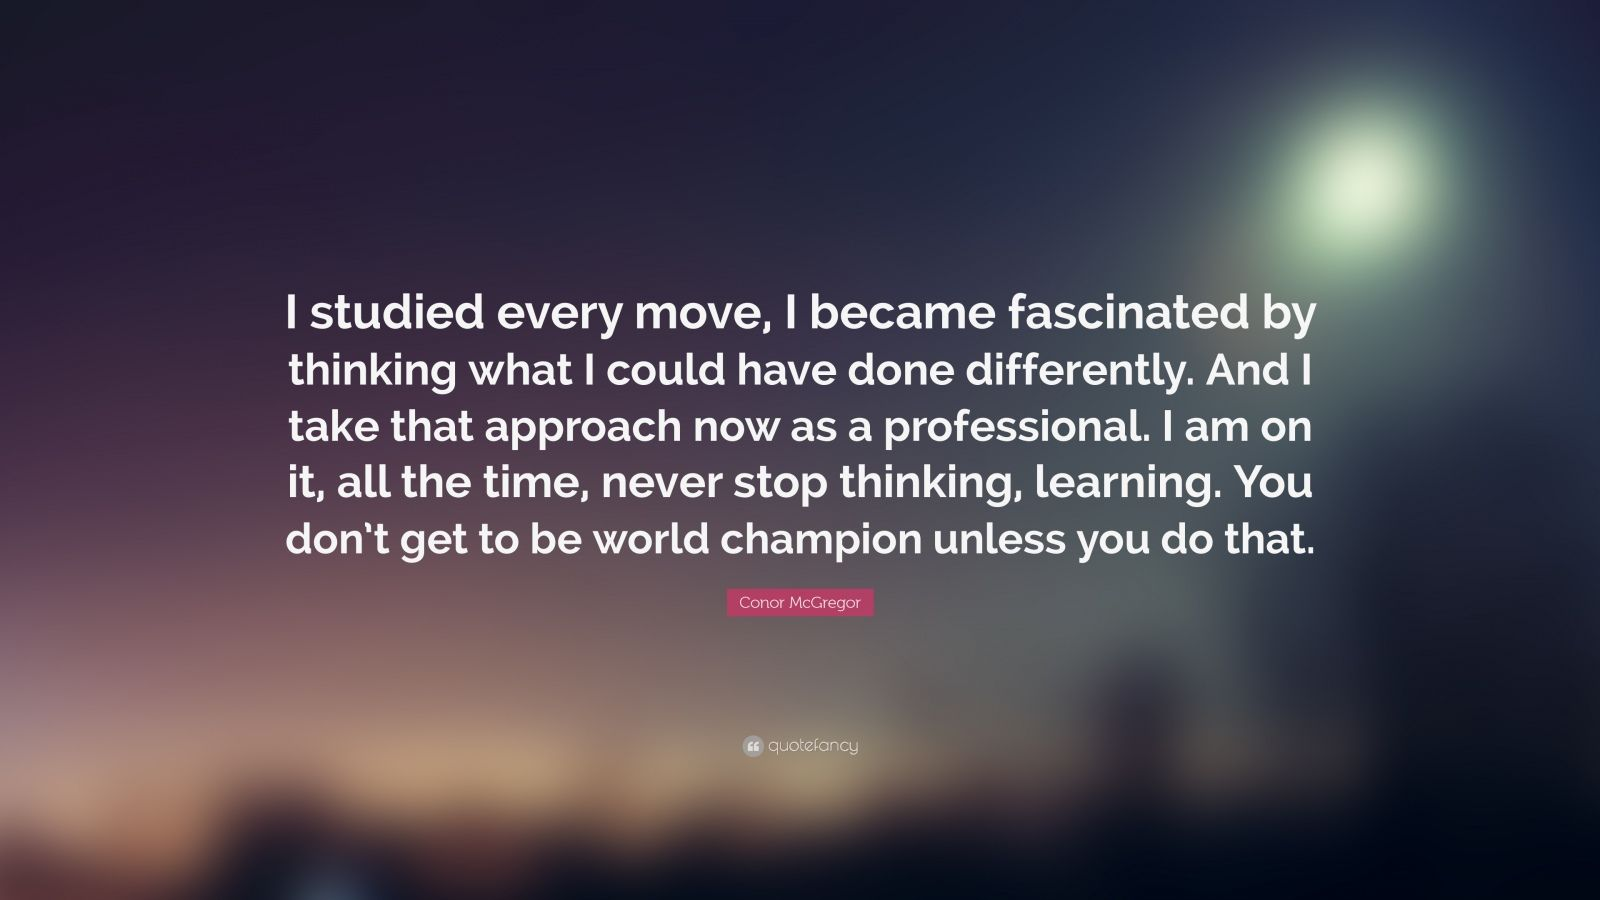 """Conor McGregor Quote: """"I studied every move, I became fascinated by thinking what I could have done differently. And I take that approach now as a professional. I am on it, all the time, never stop thinking, learning. You don't get to be world champion unless you do that."""""""